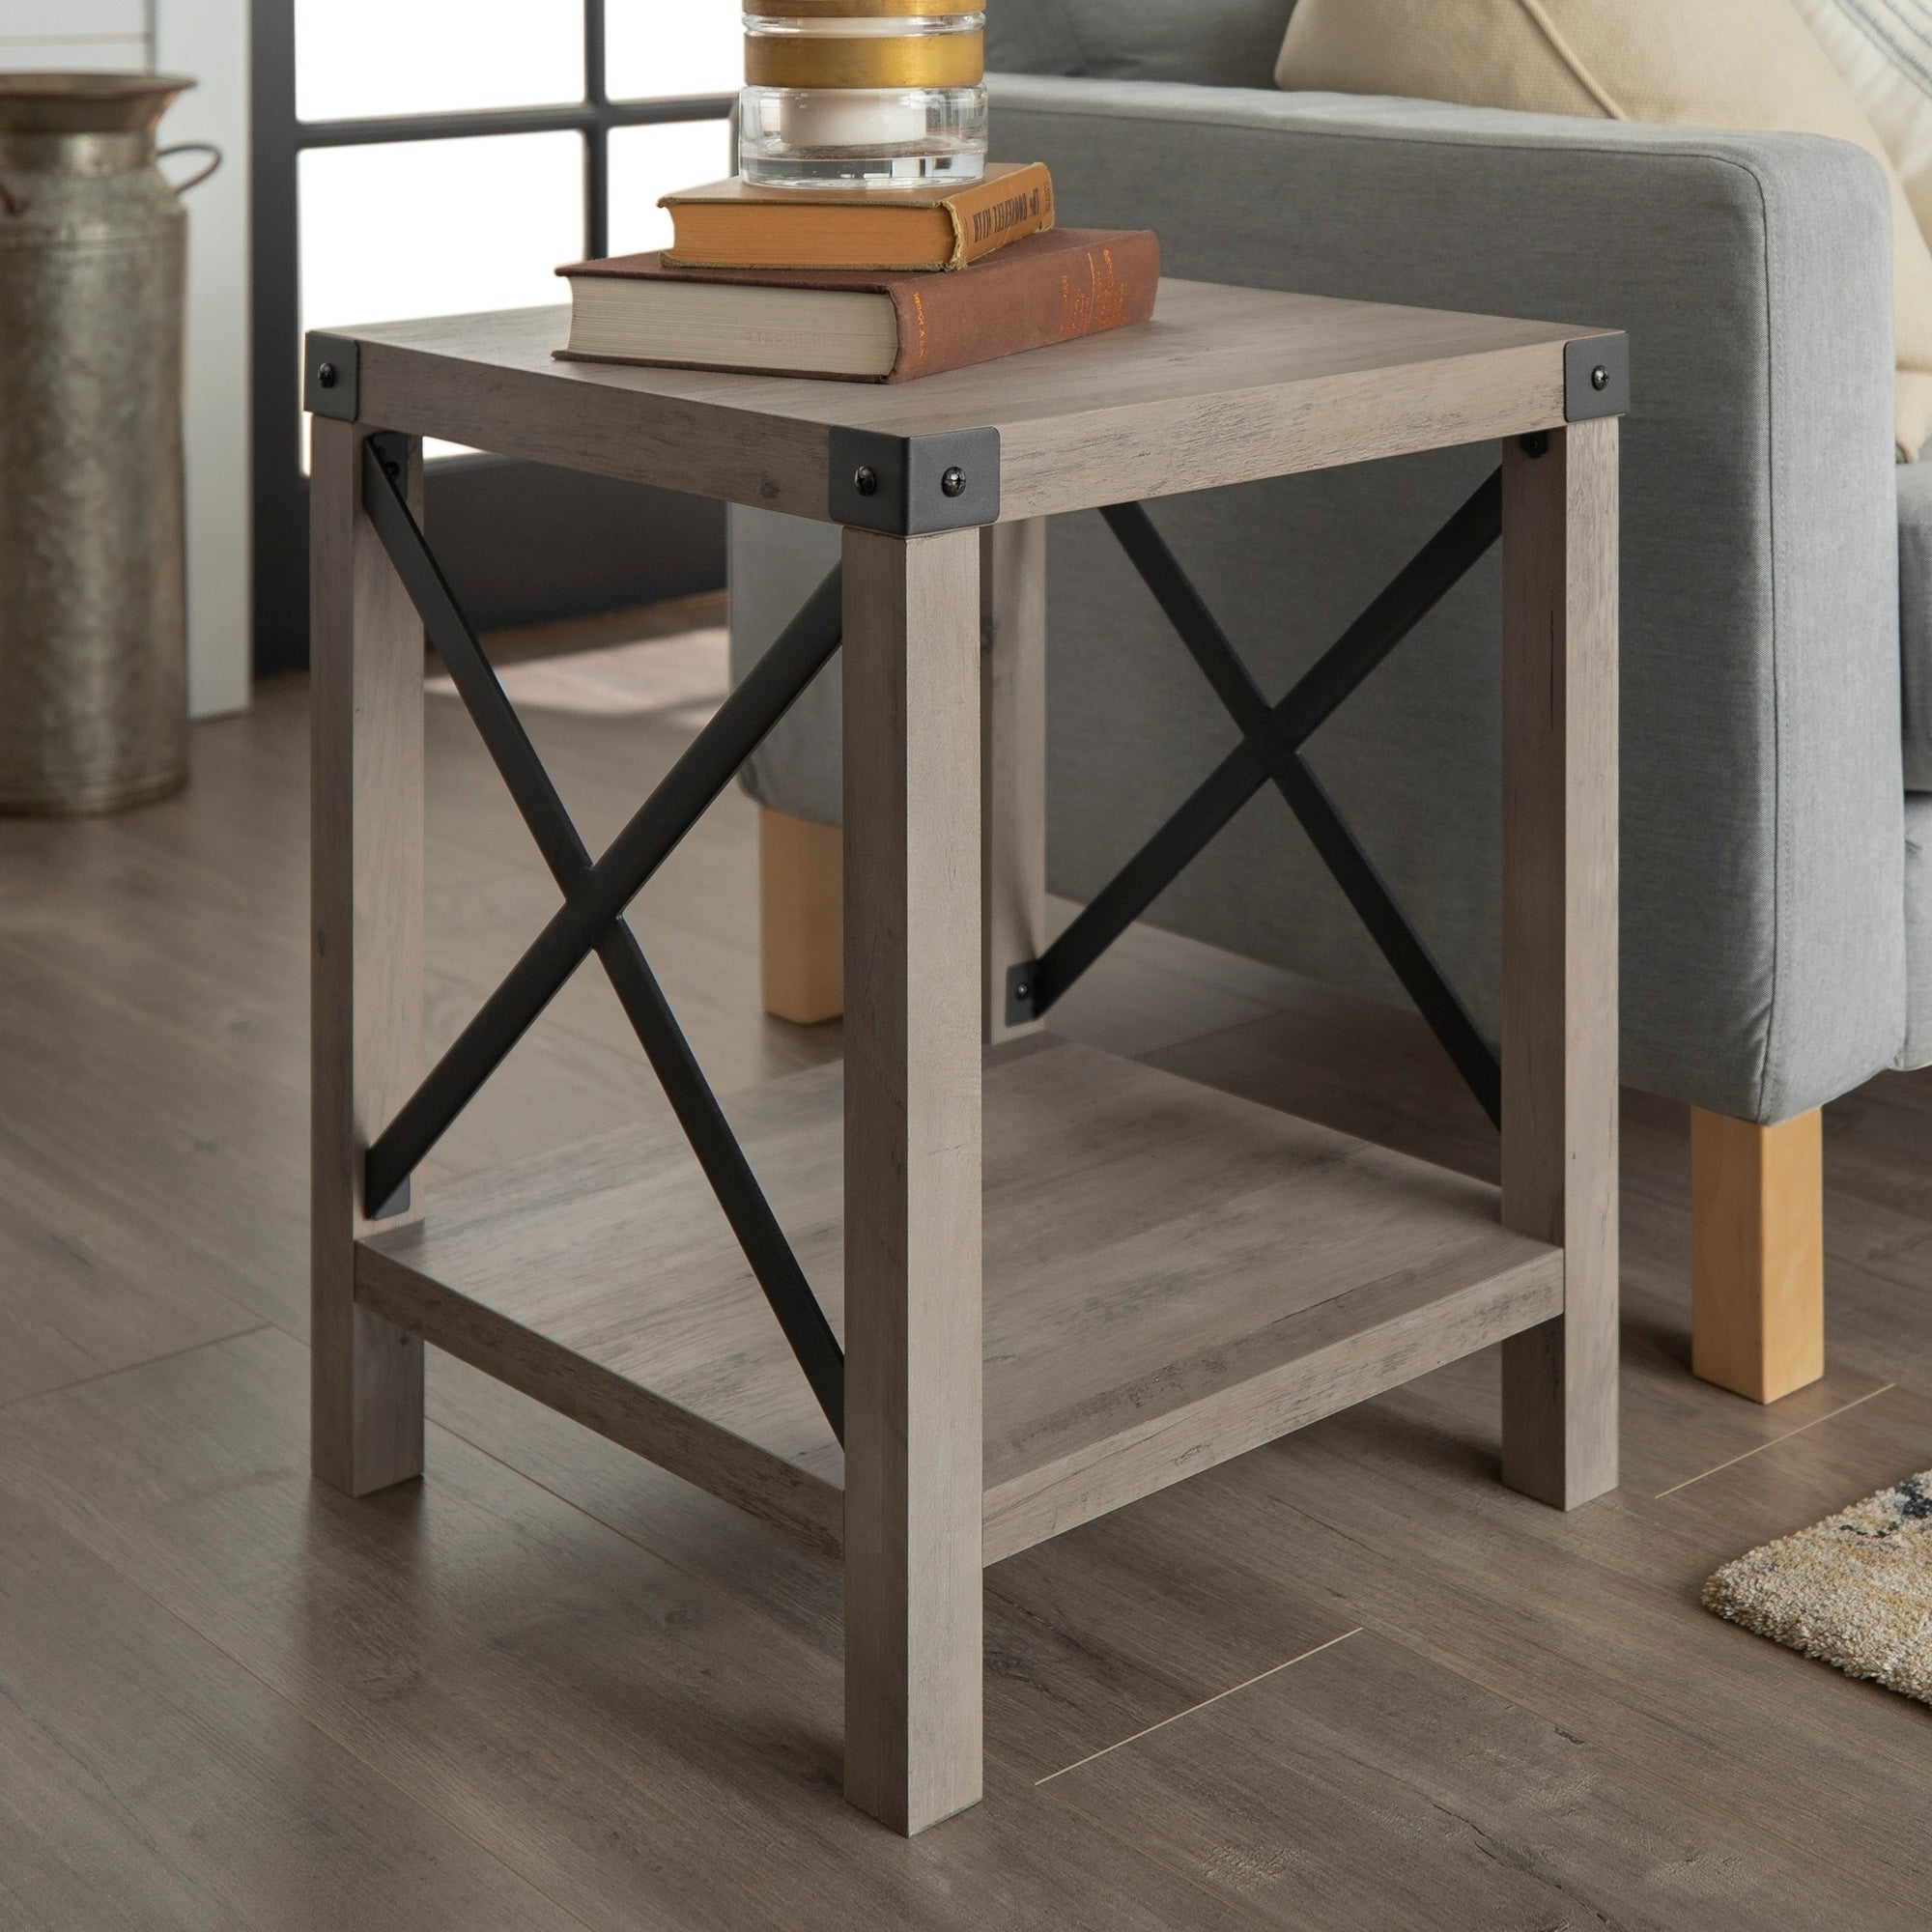 The Gray Barn 18 Inch Kujawa Rustic Side, End Table, Farmhouse X Frame For Living Room – 18 X 18 X 22h Regarding Best And Newest The Gray Barn Kujawa Metal X Coffee Tables – 40 X 22 X 18h (View 13 of 20)